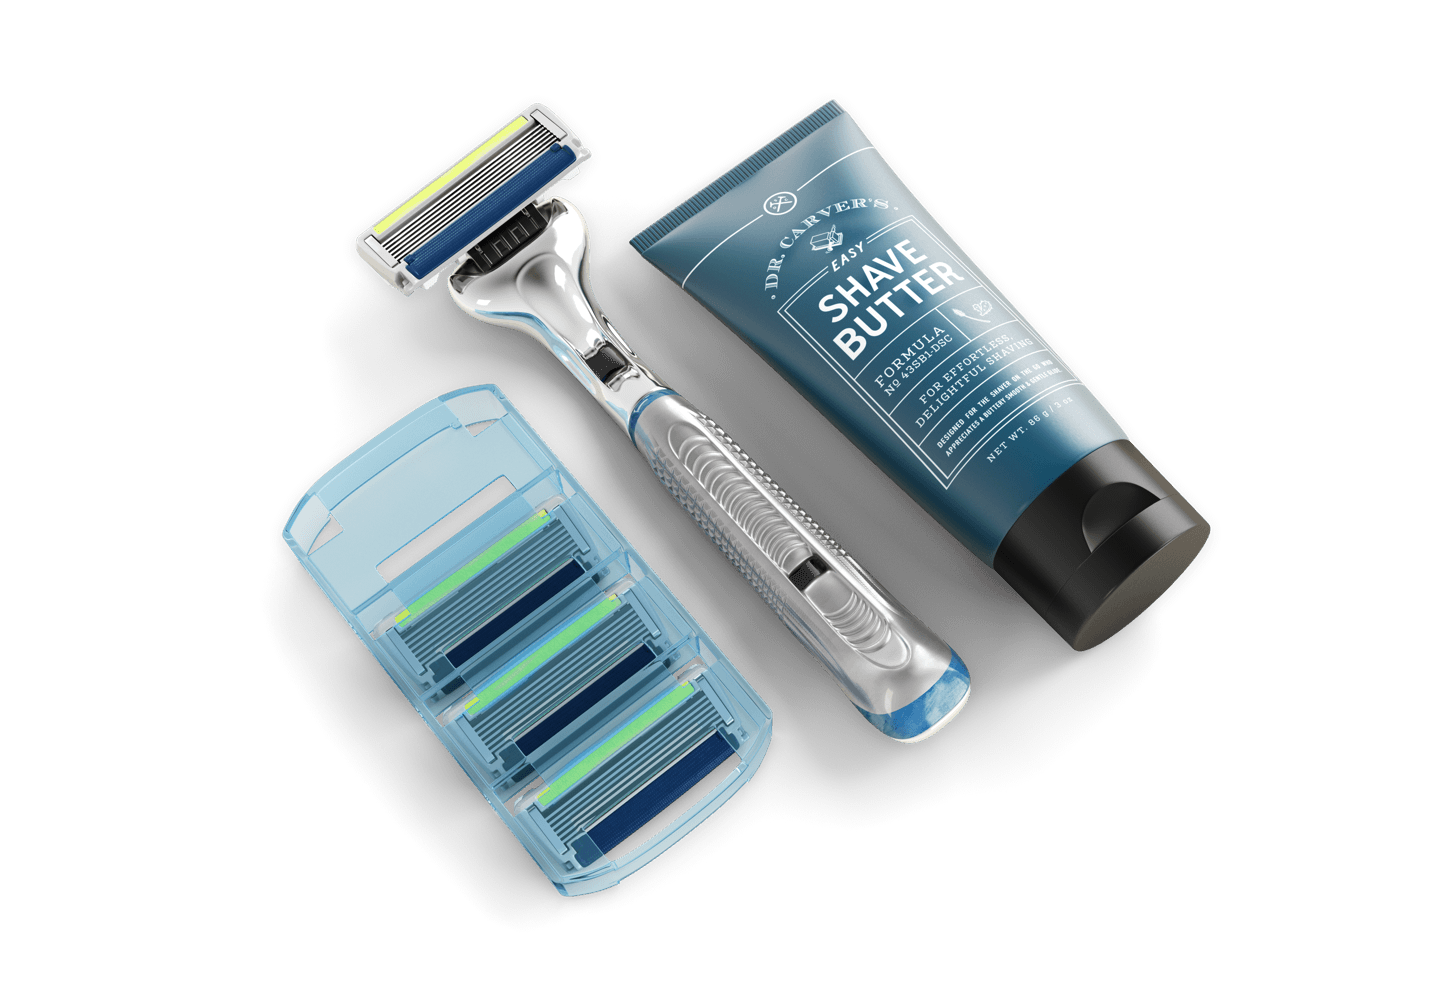 Dollar Shave Club's £5 starter set, consisting of three razor heads, a razor handle, and a tube of shave butter